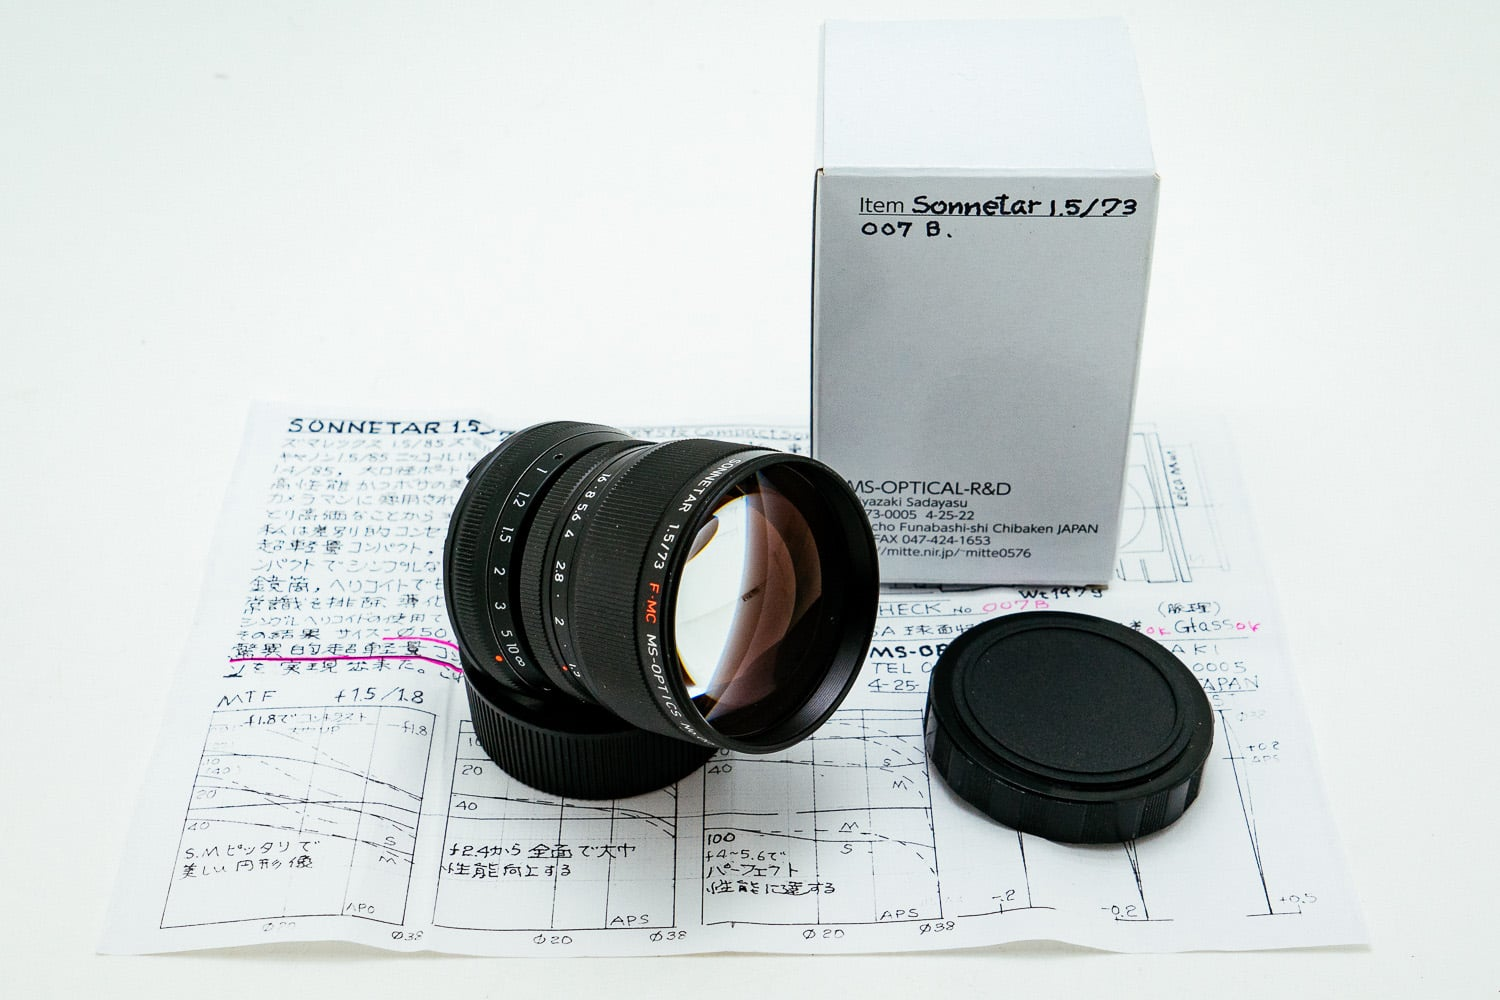 Camera Geekery: MS Optics Sonnetar 1.5/73 FMC